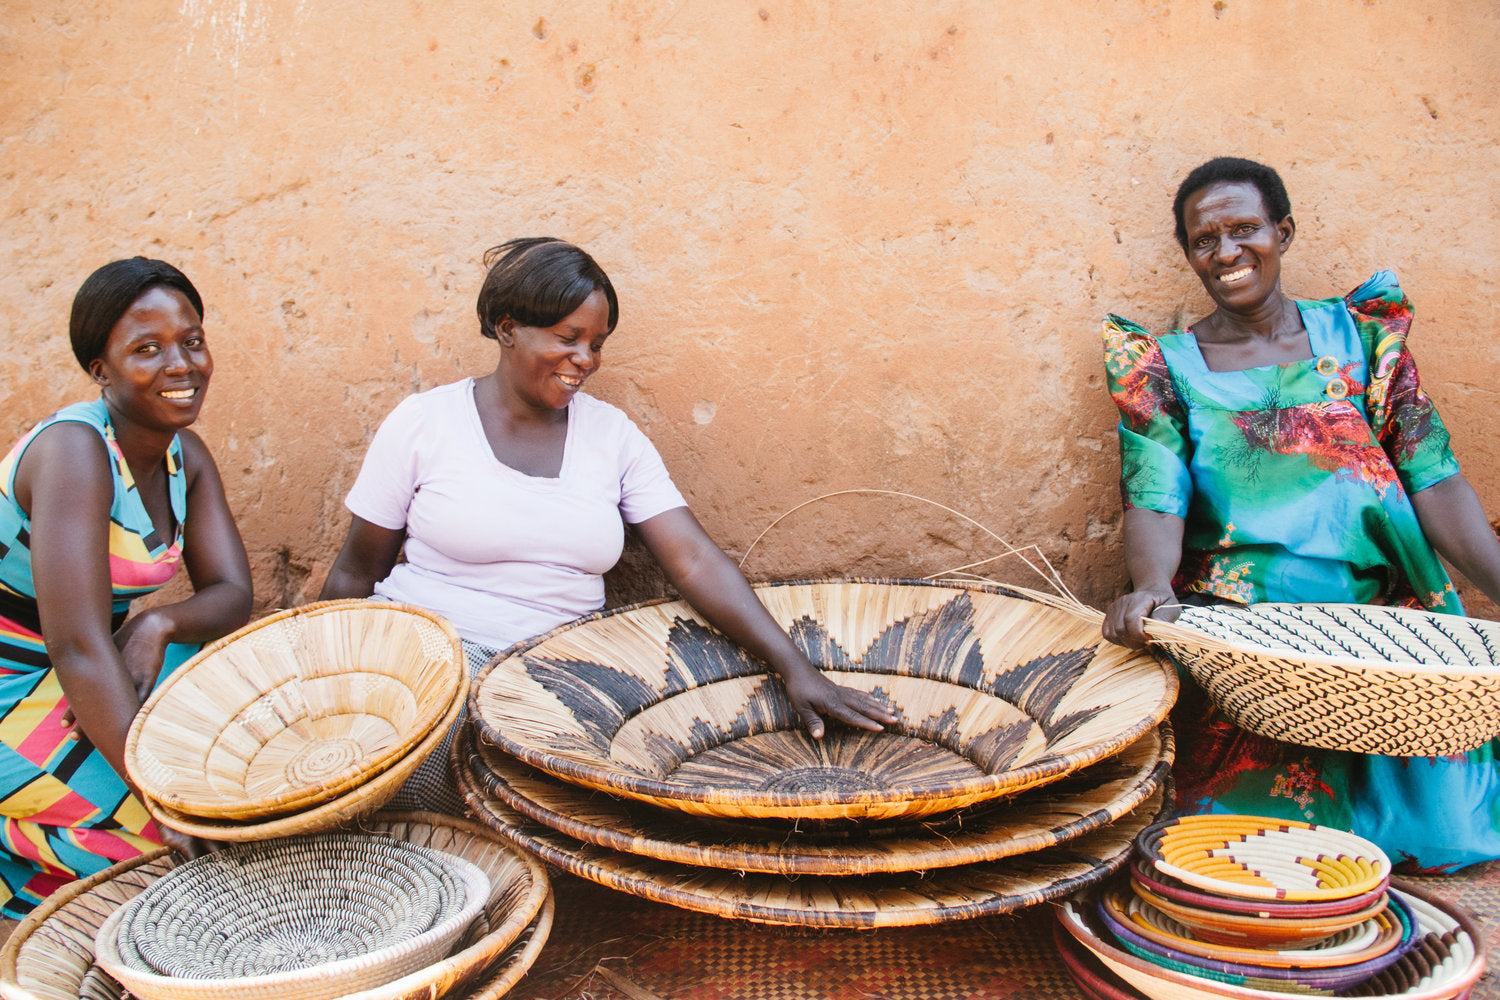 African basket weavers with their work